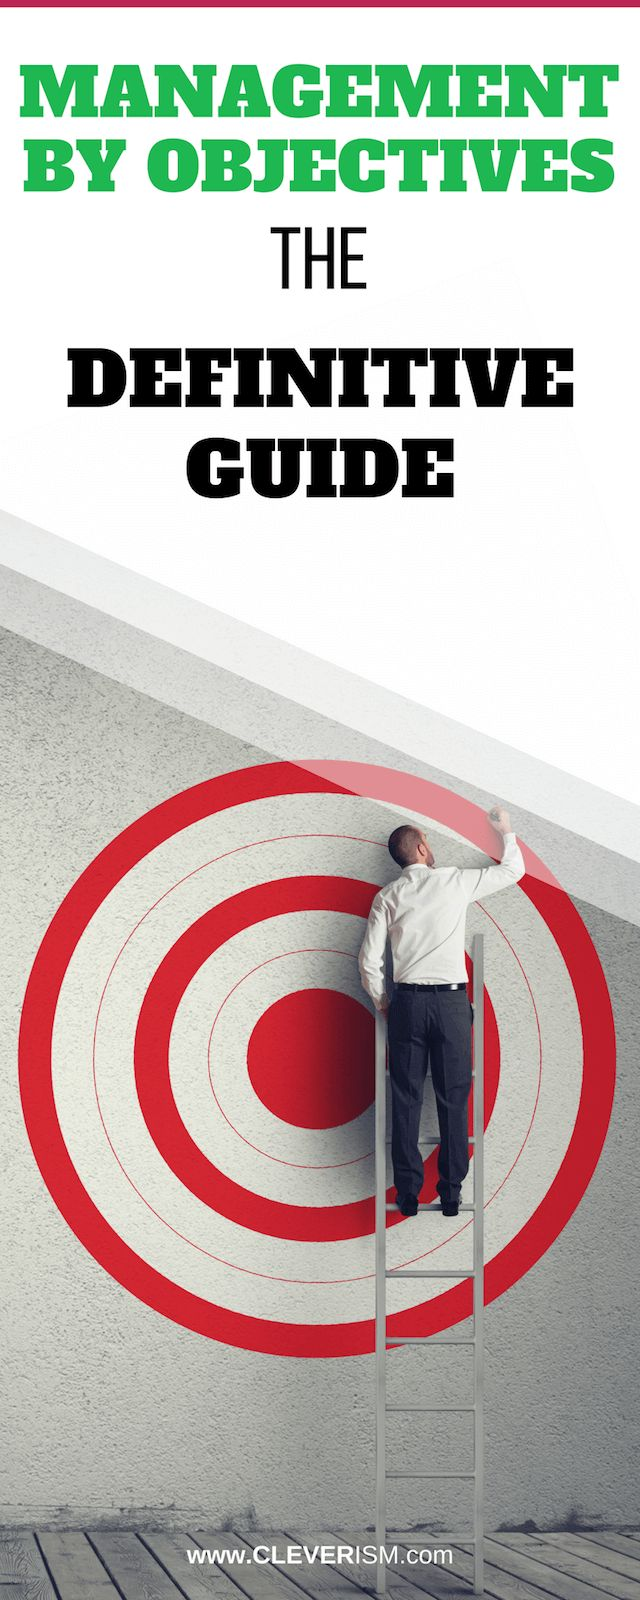 Management by Objectives – The Definitive Guide - #Management #ManagementByObjectives #Objectives